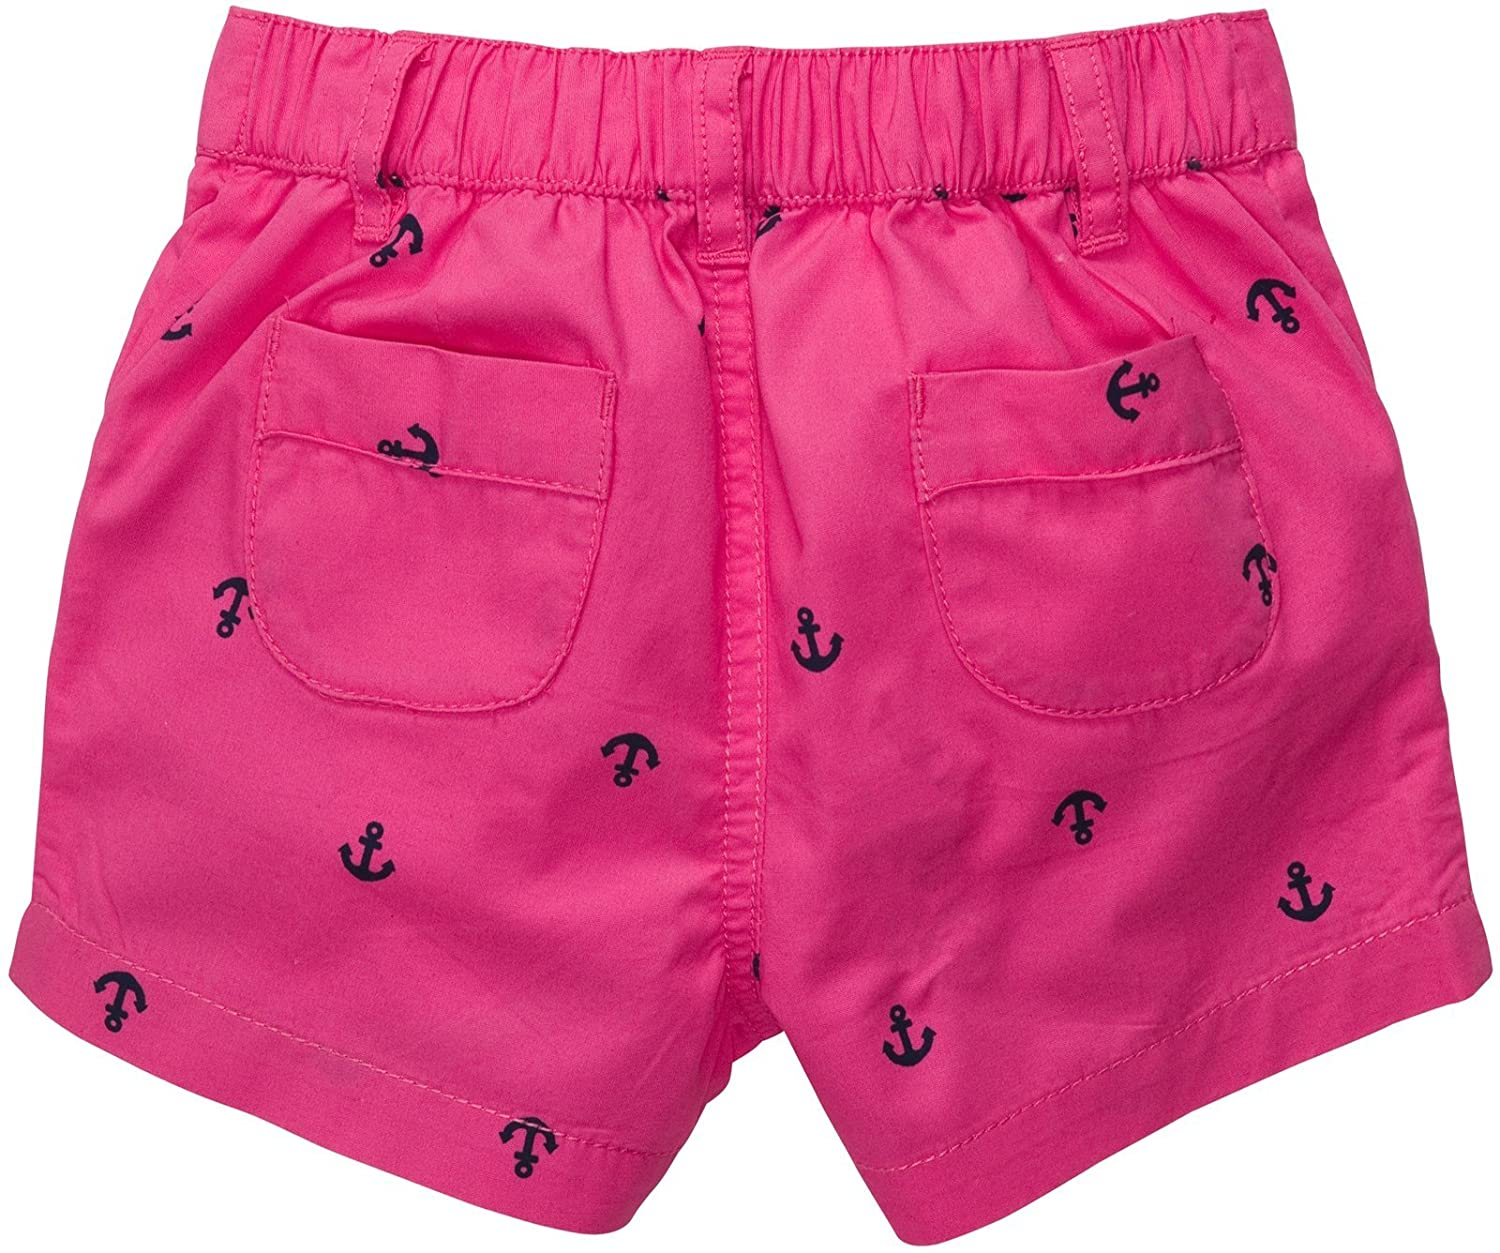 Carters Girls Youth Woven Pull On Short Carters 278A395